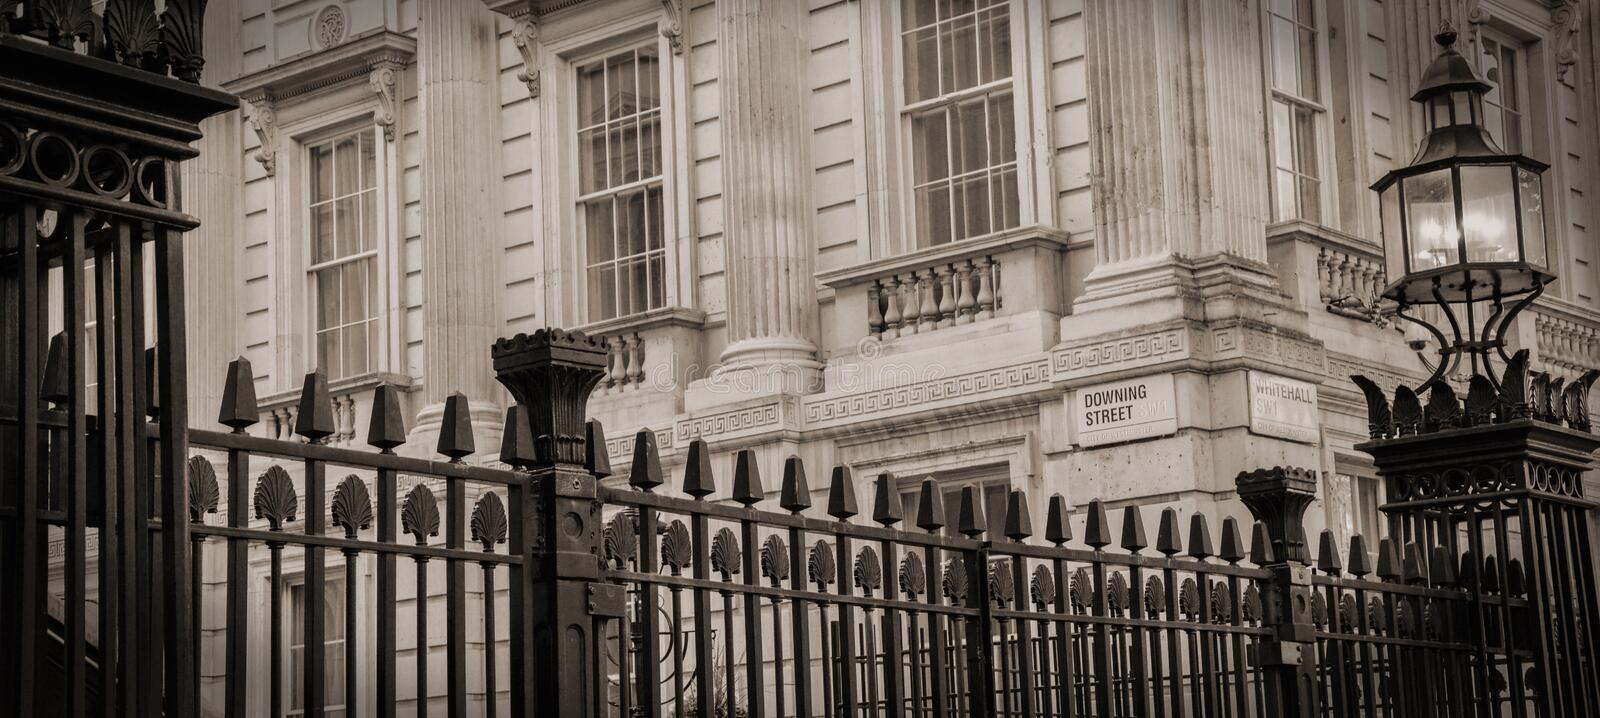 No 10 Downing Street. A close up of the gates into Number 10 Downing Street - residence of the British Prime Minster stock photo